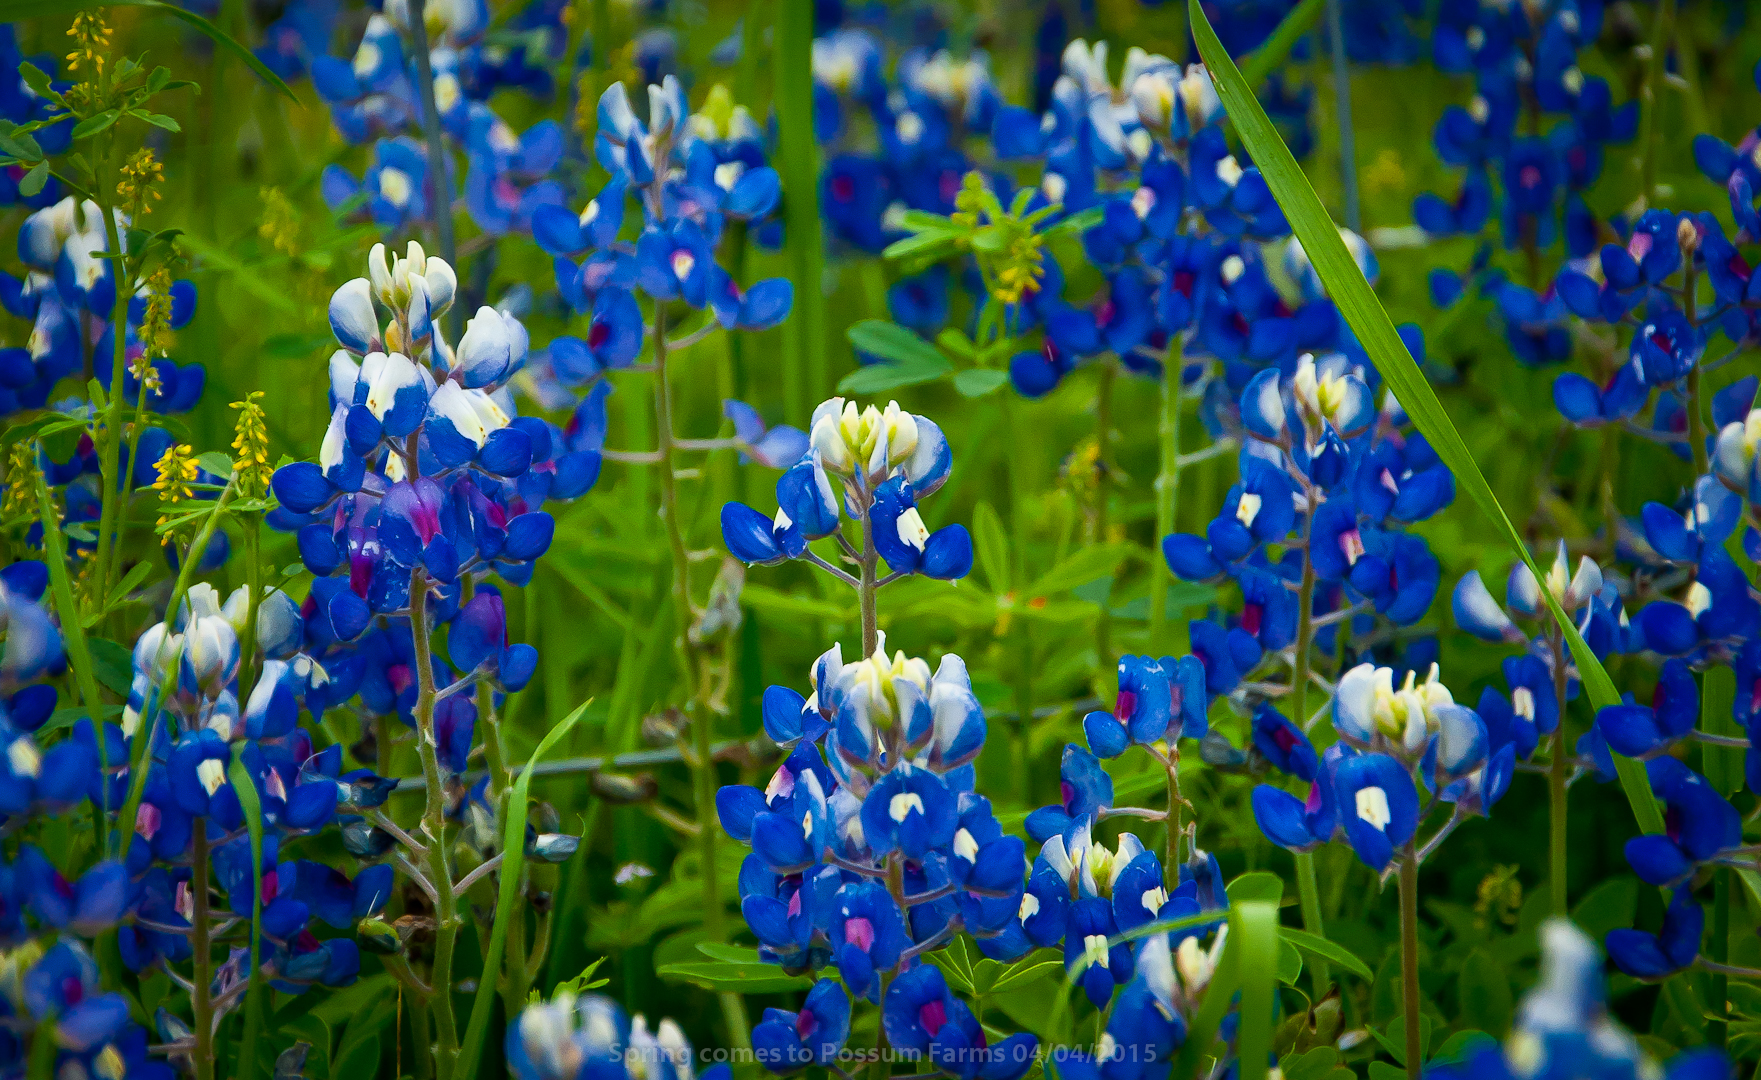 Bluebonnets in the South pasture